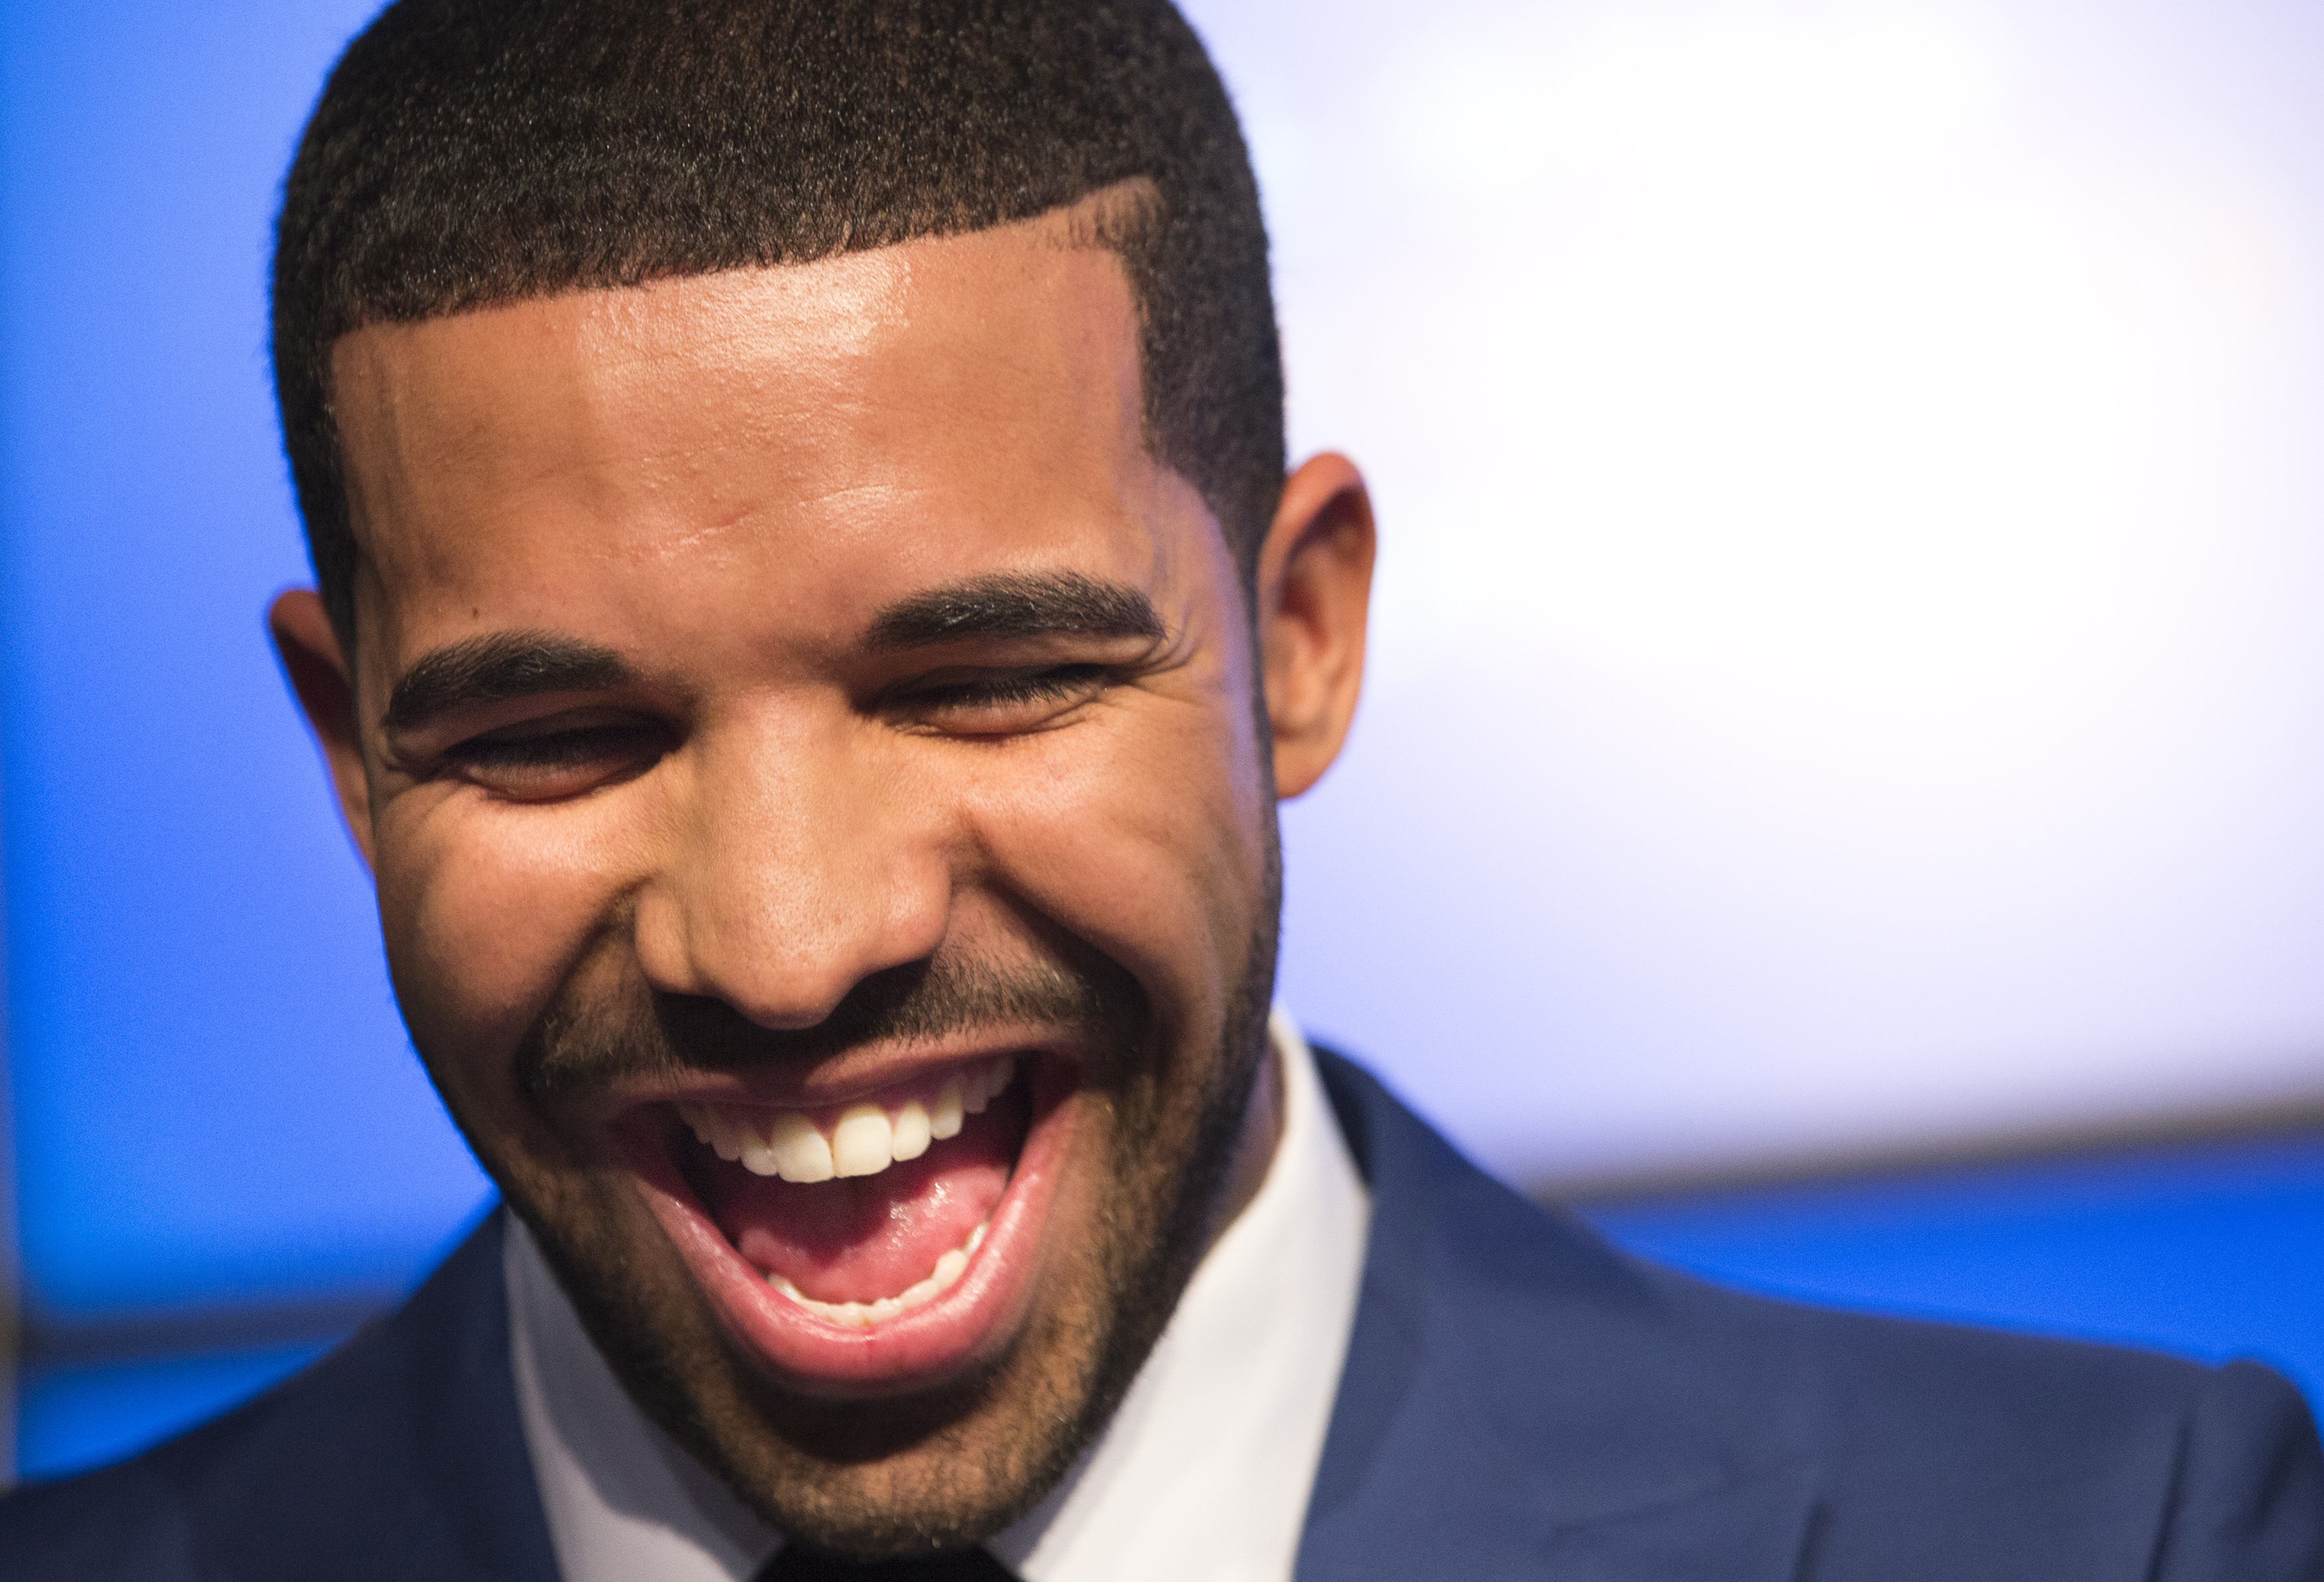 Promoters Trick Drake Fans Into Buying Fake Tour Tickets